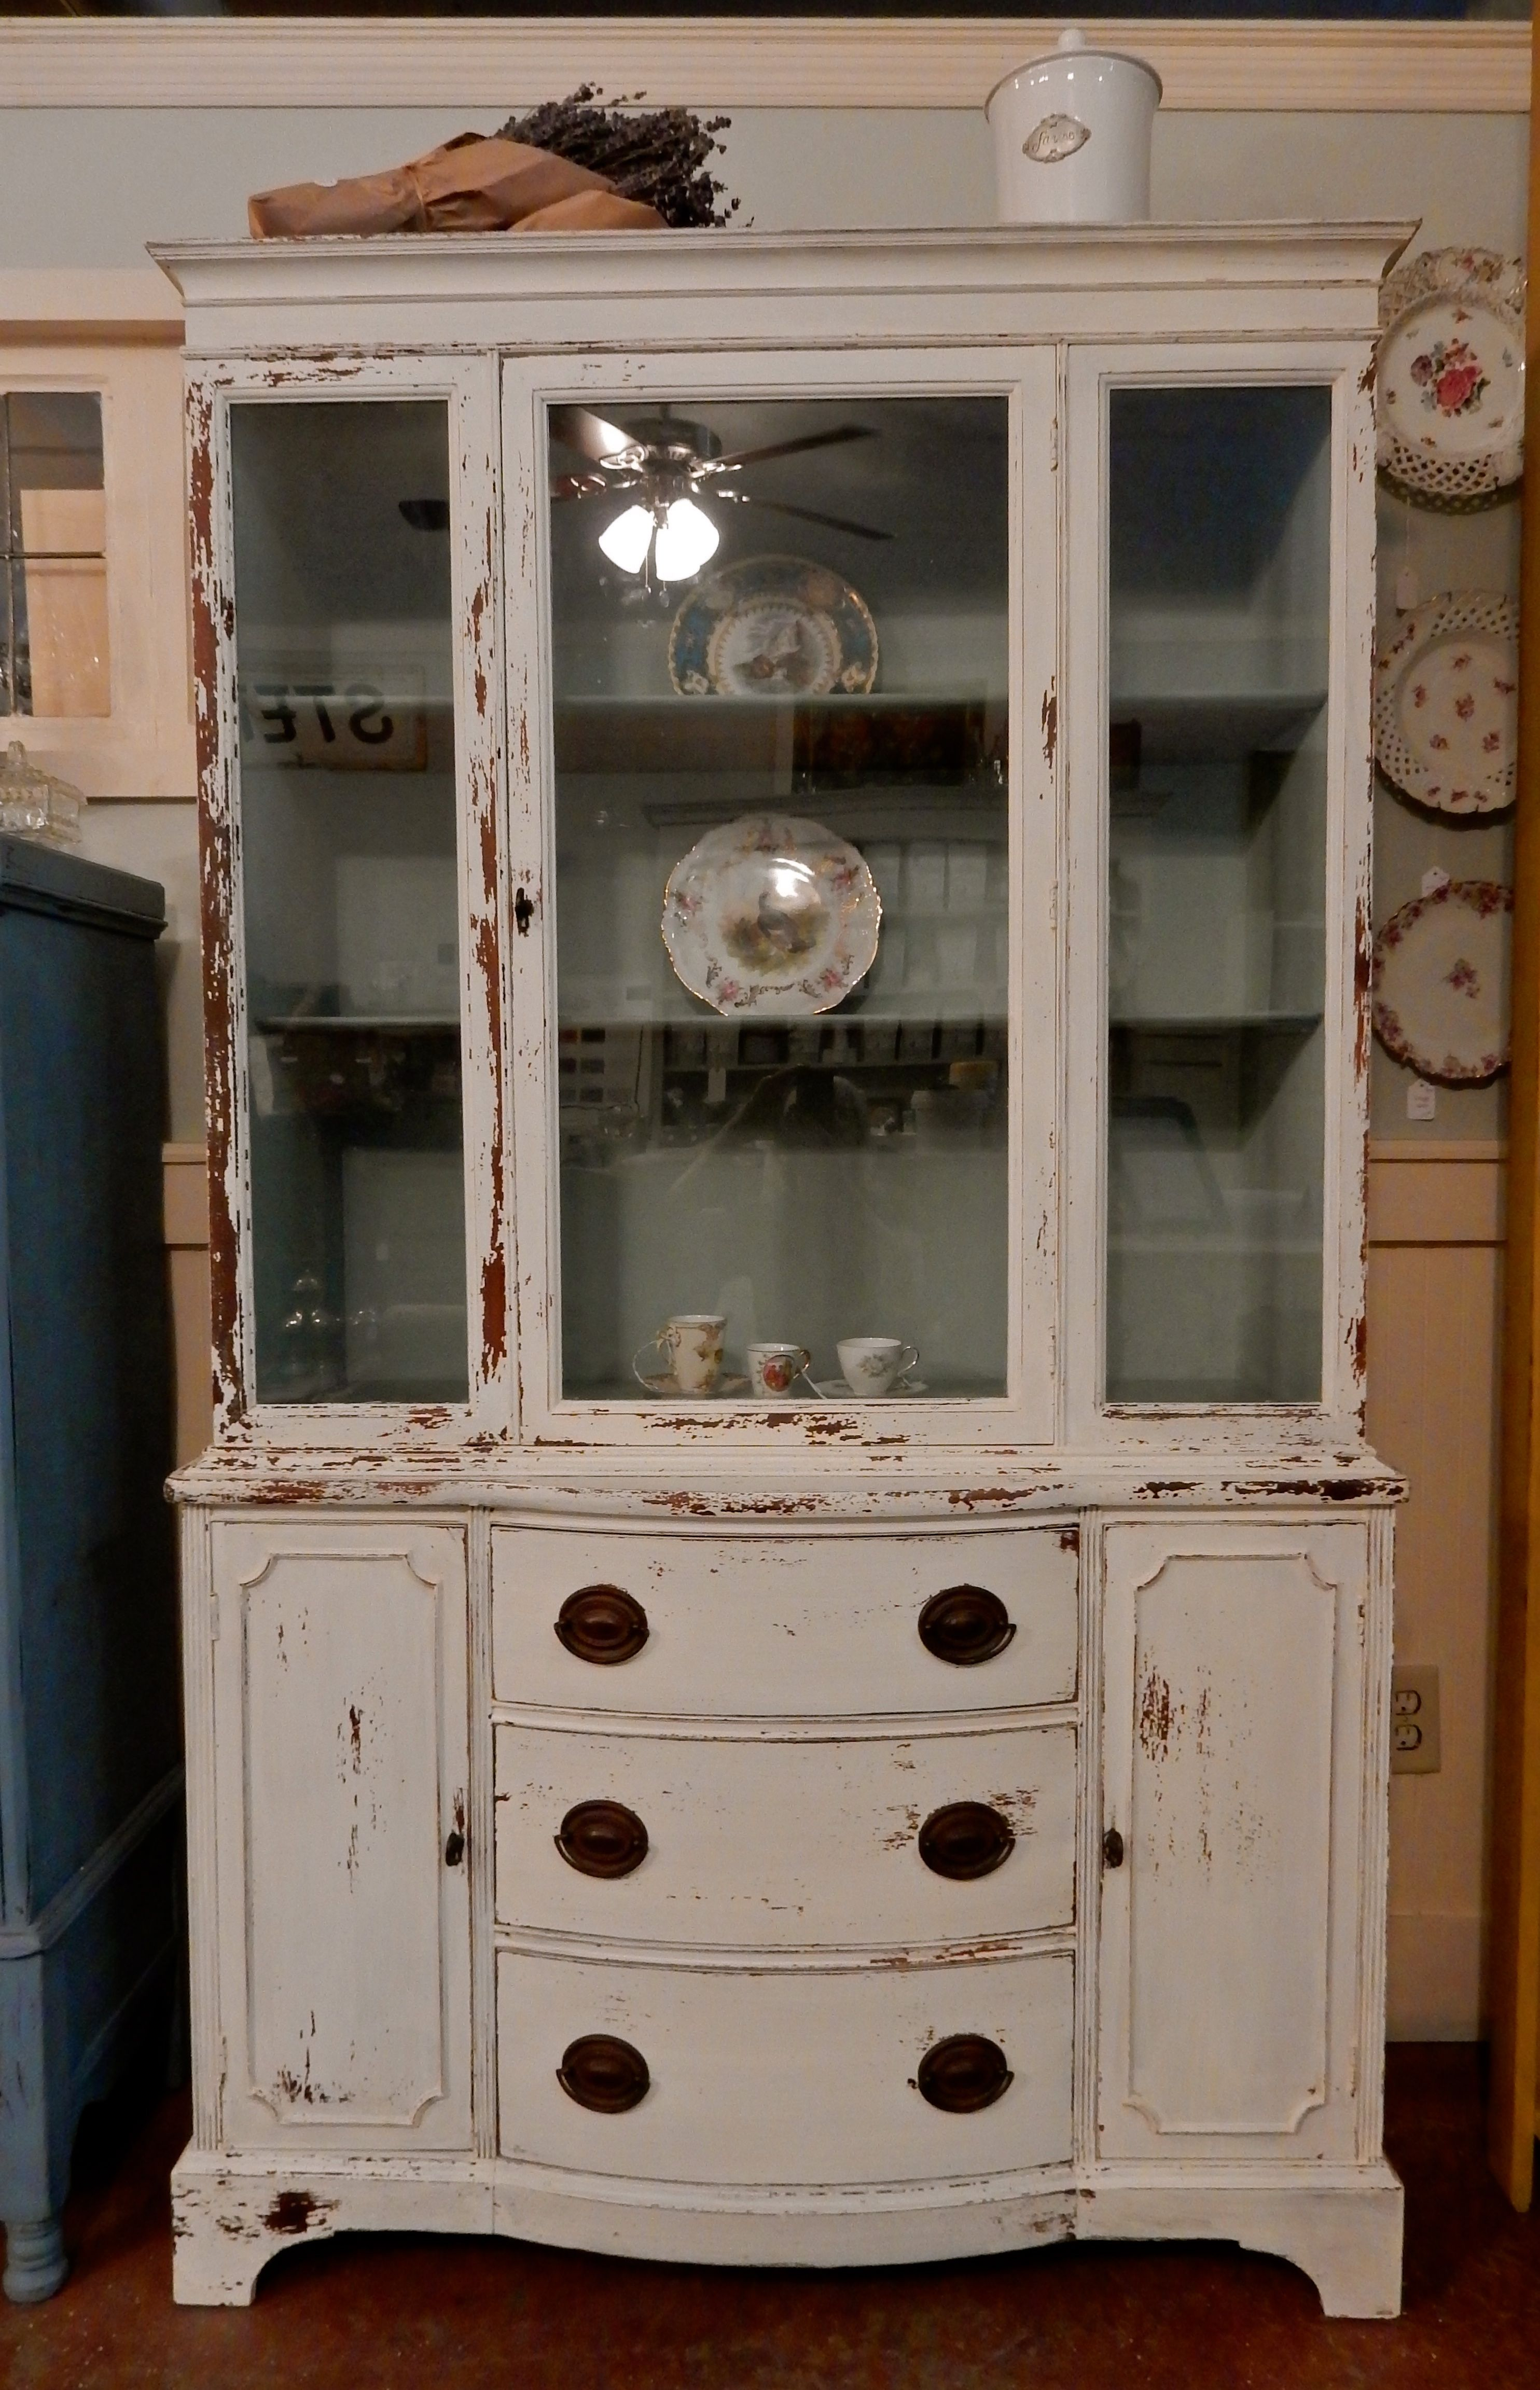 Vintage mahogany china cabinet Had lots of scratches and veneer